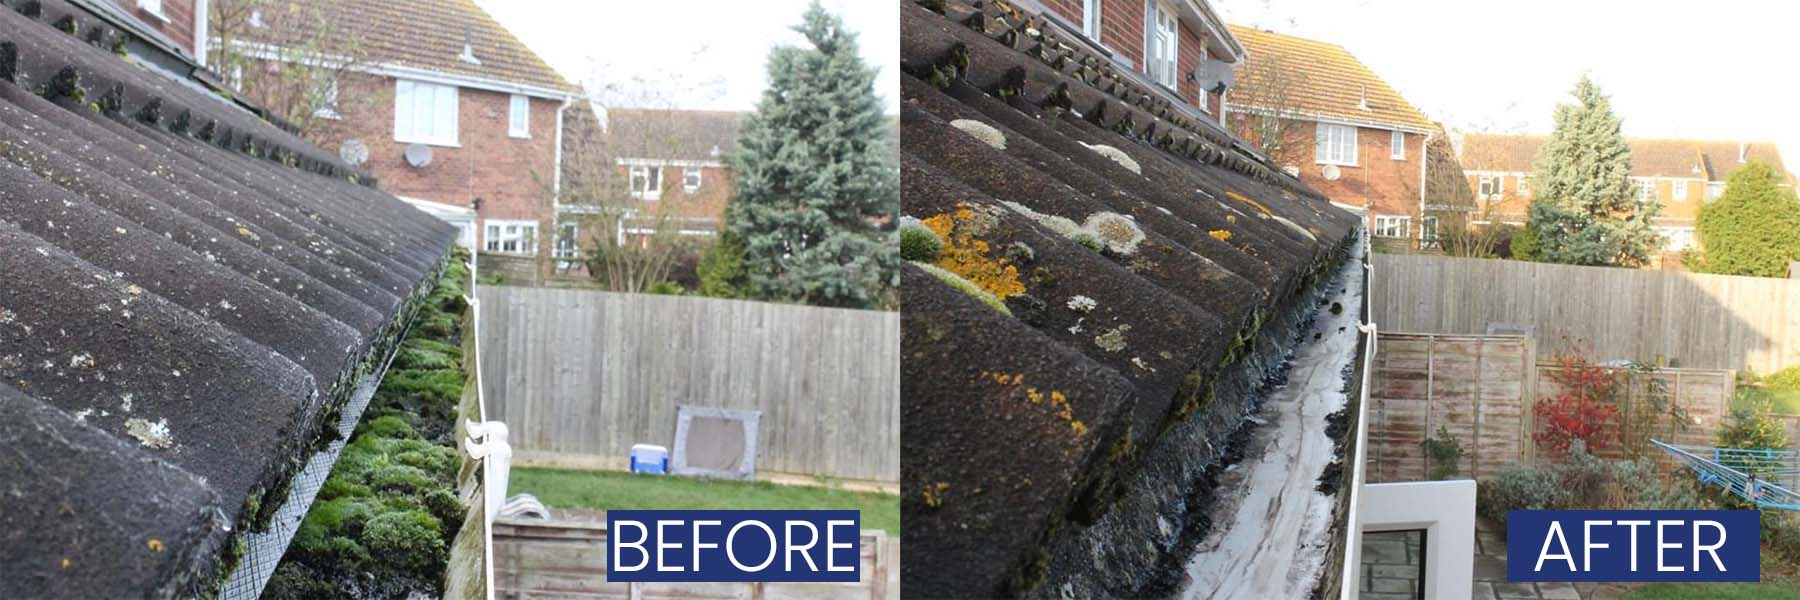 Before and after gutters